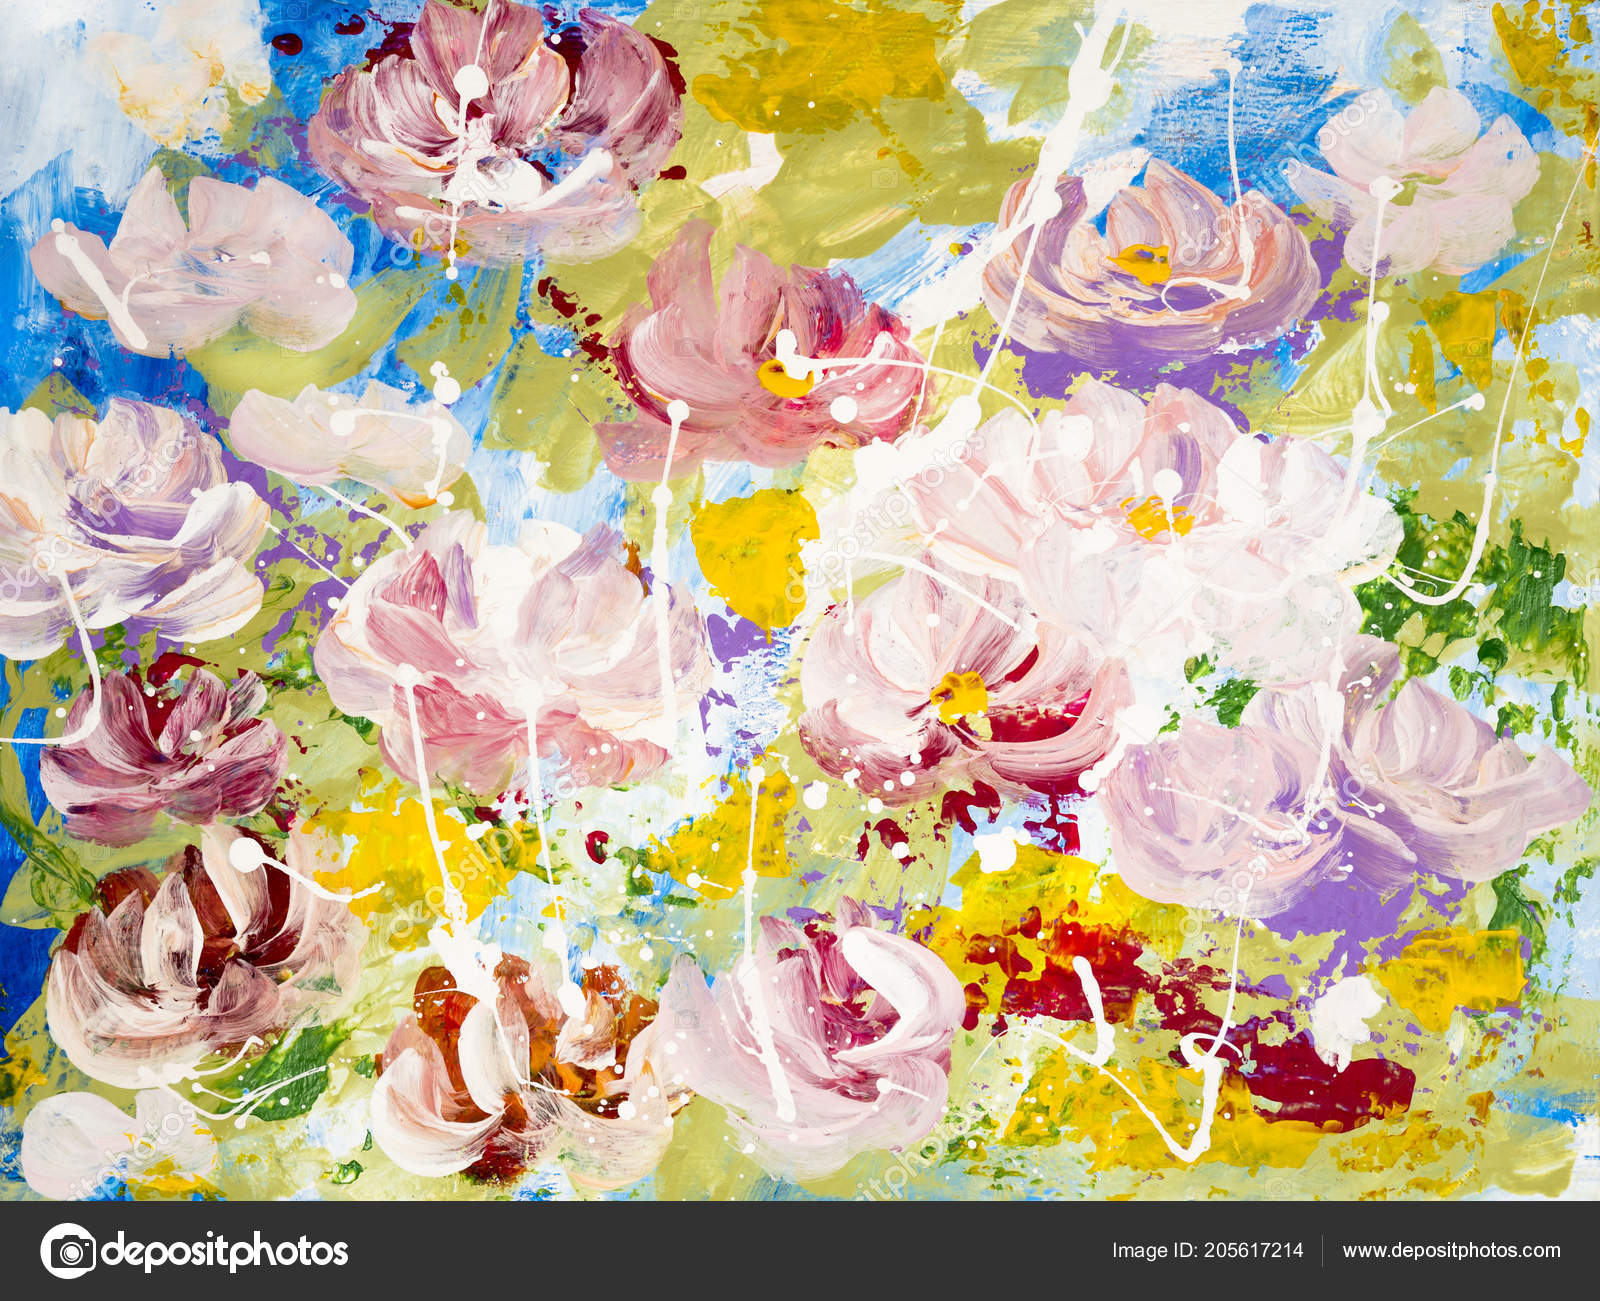 Pictures Paintings Flowers Acrylic Abstract Flowers